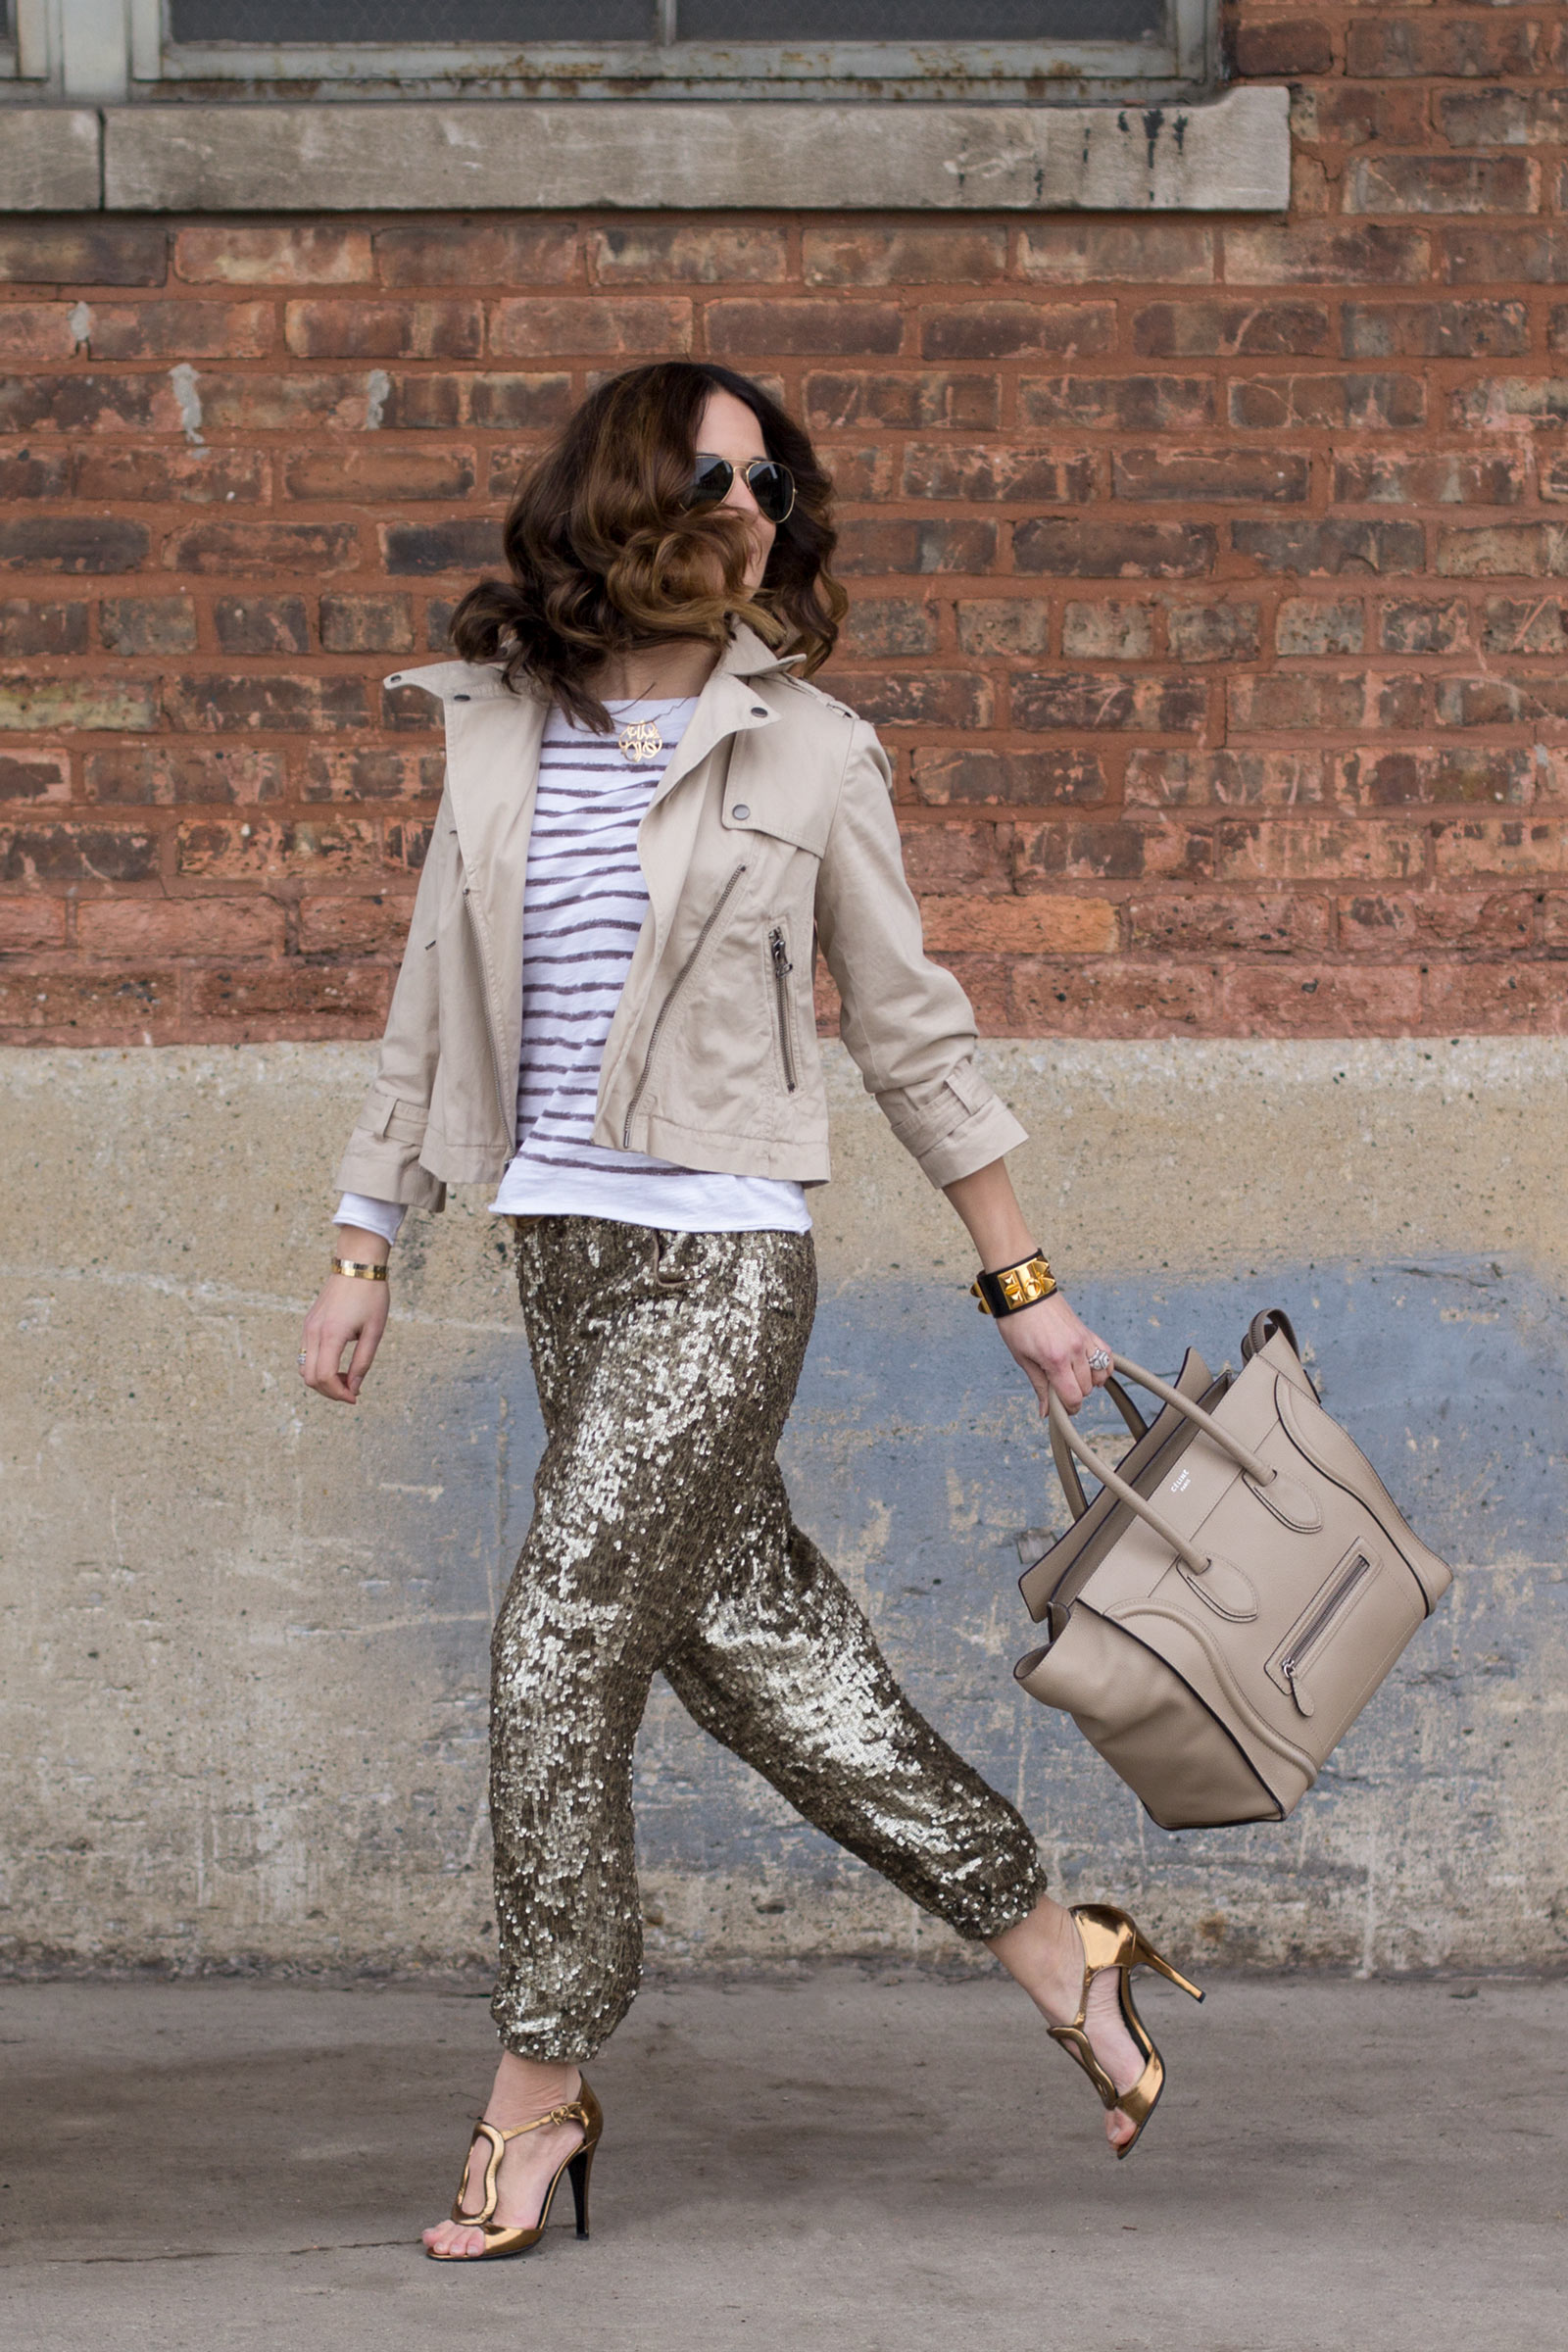 J. Crew Collection Sequin Pants